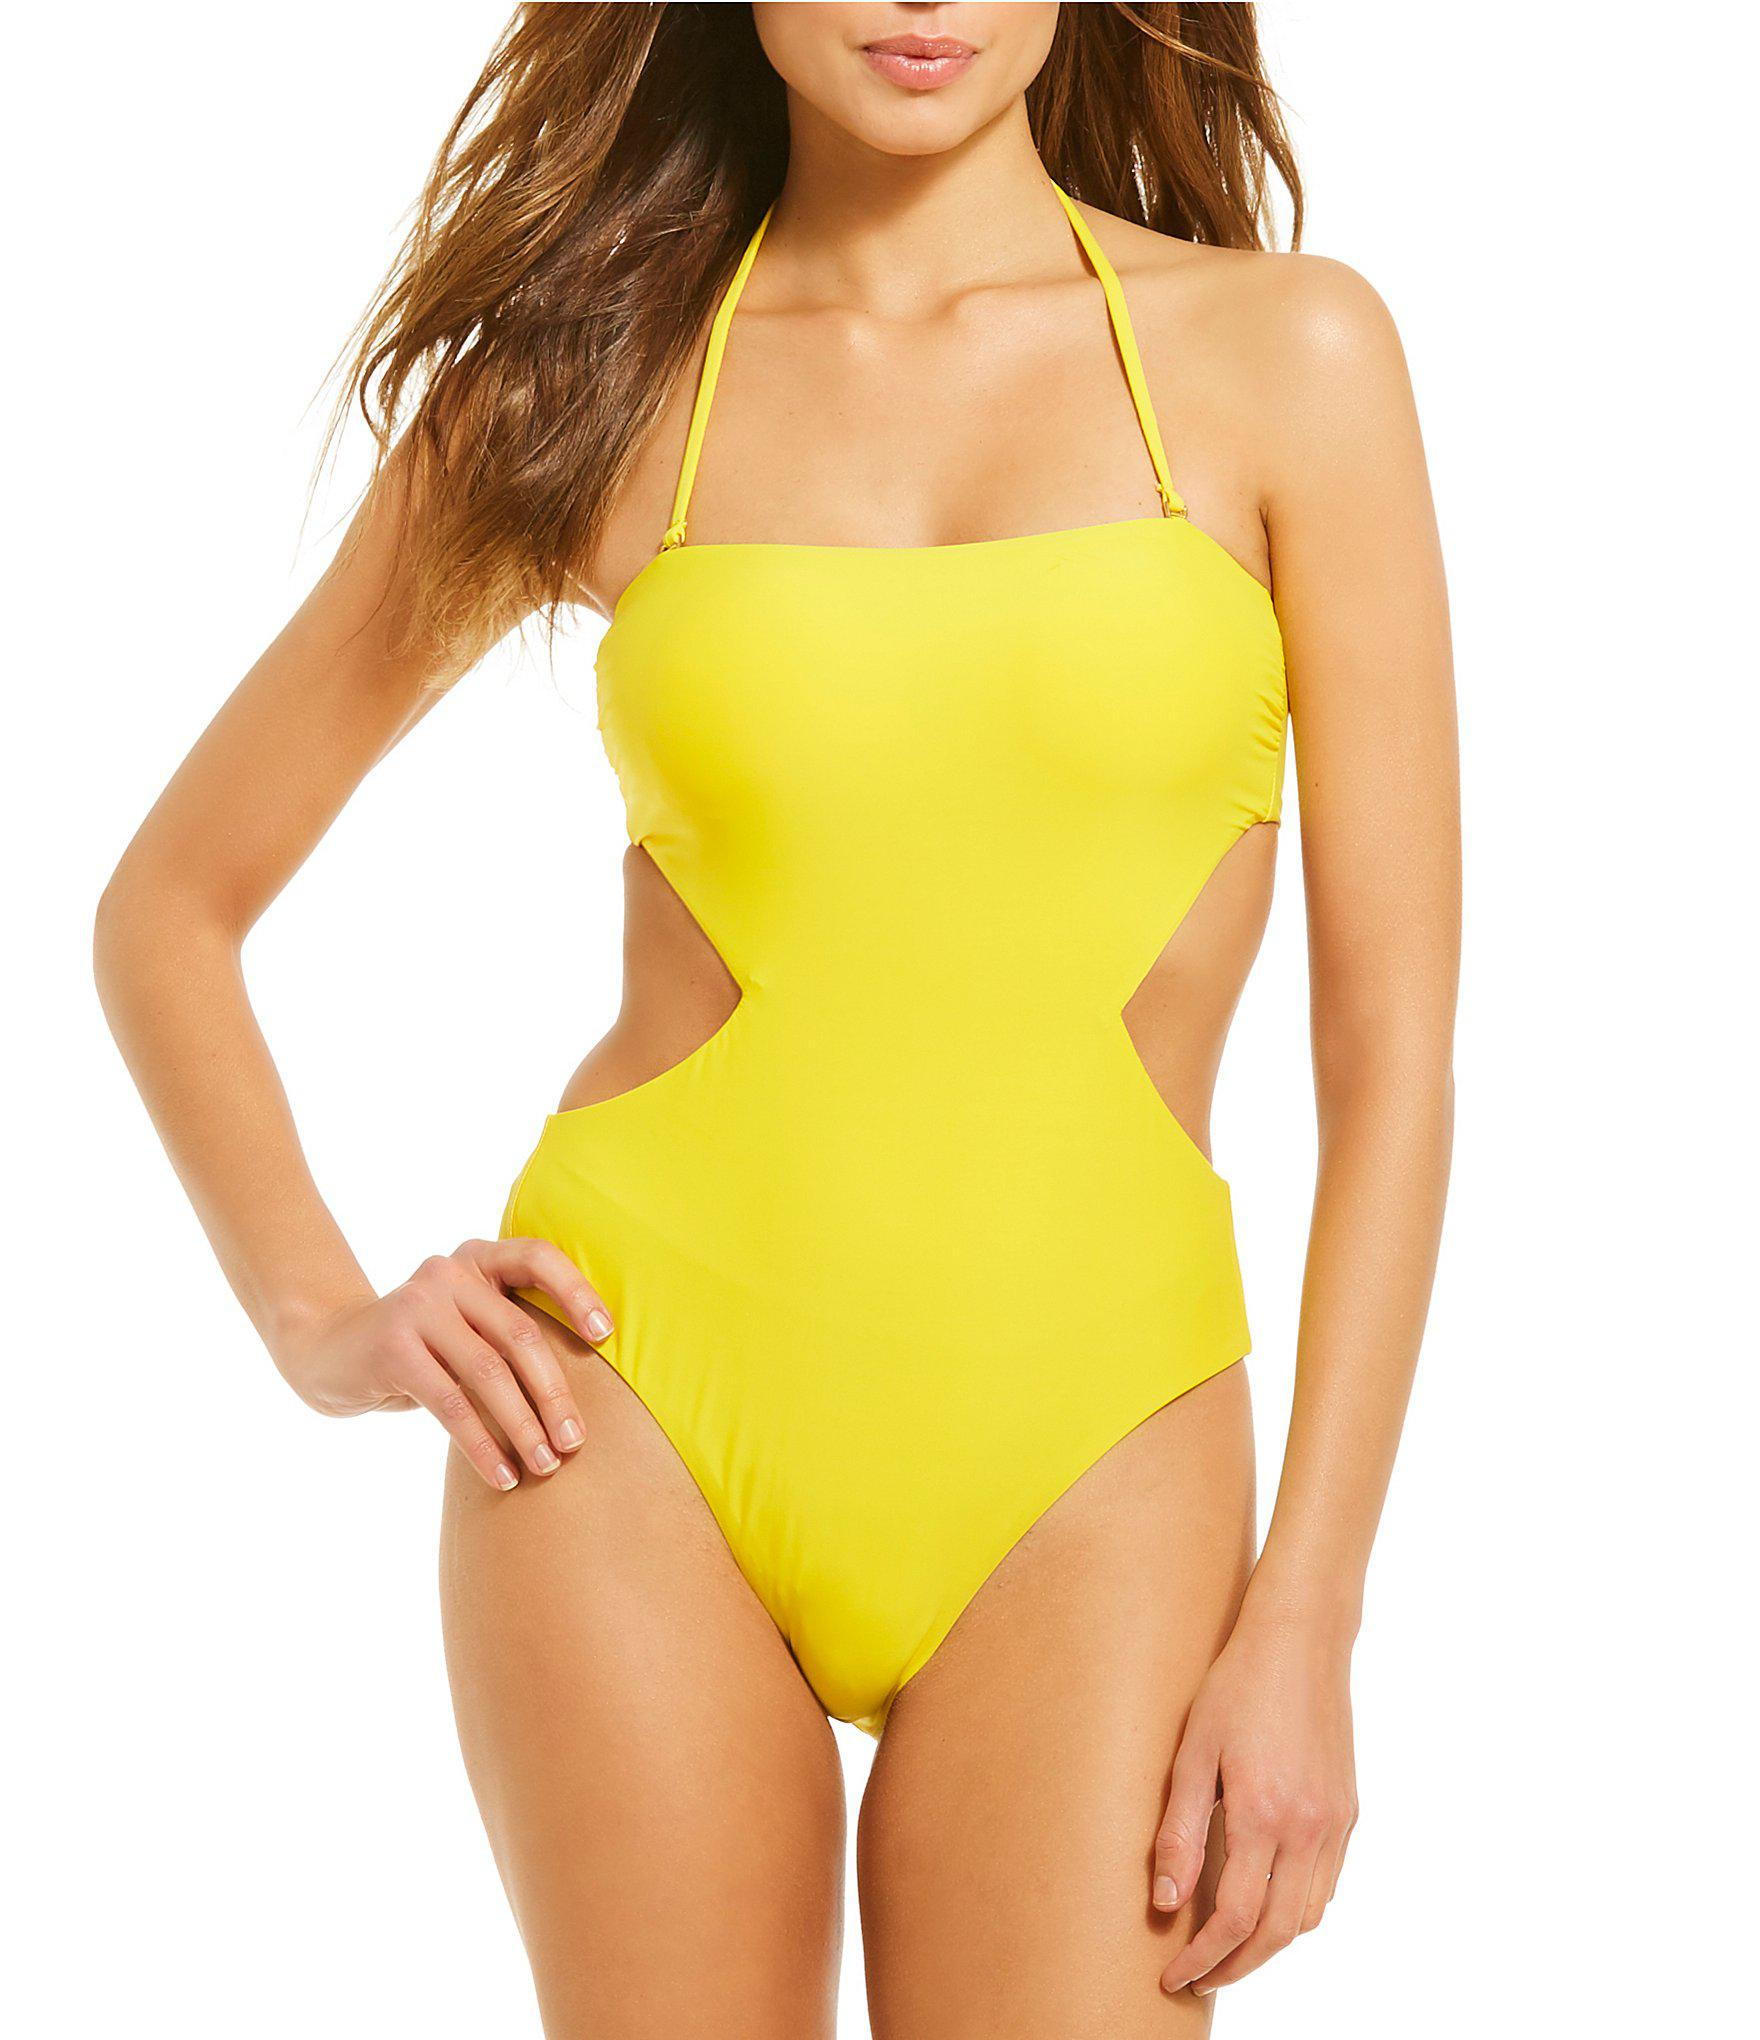 b16d0a0c84f Gianni Bini Solid Cut-out Bandeau High Leg One-piece Swimsuit in ...